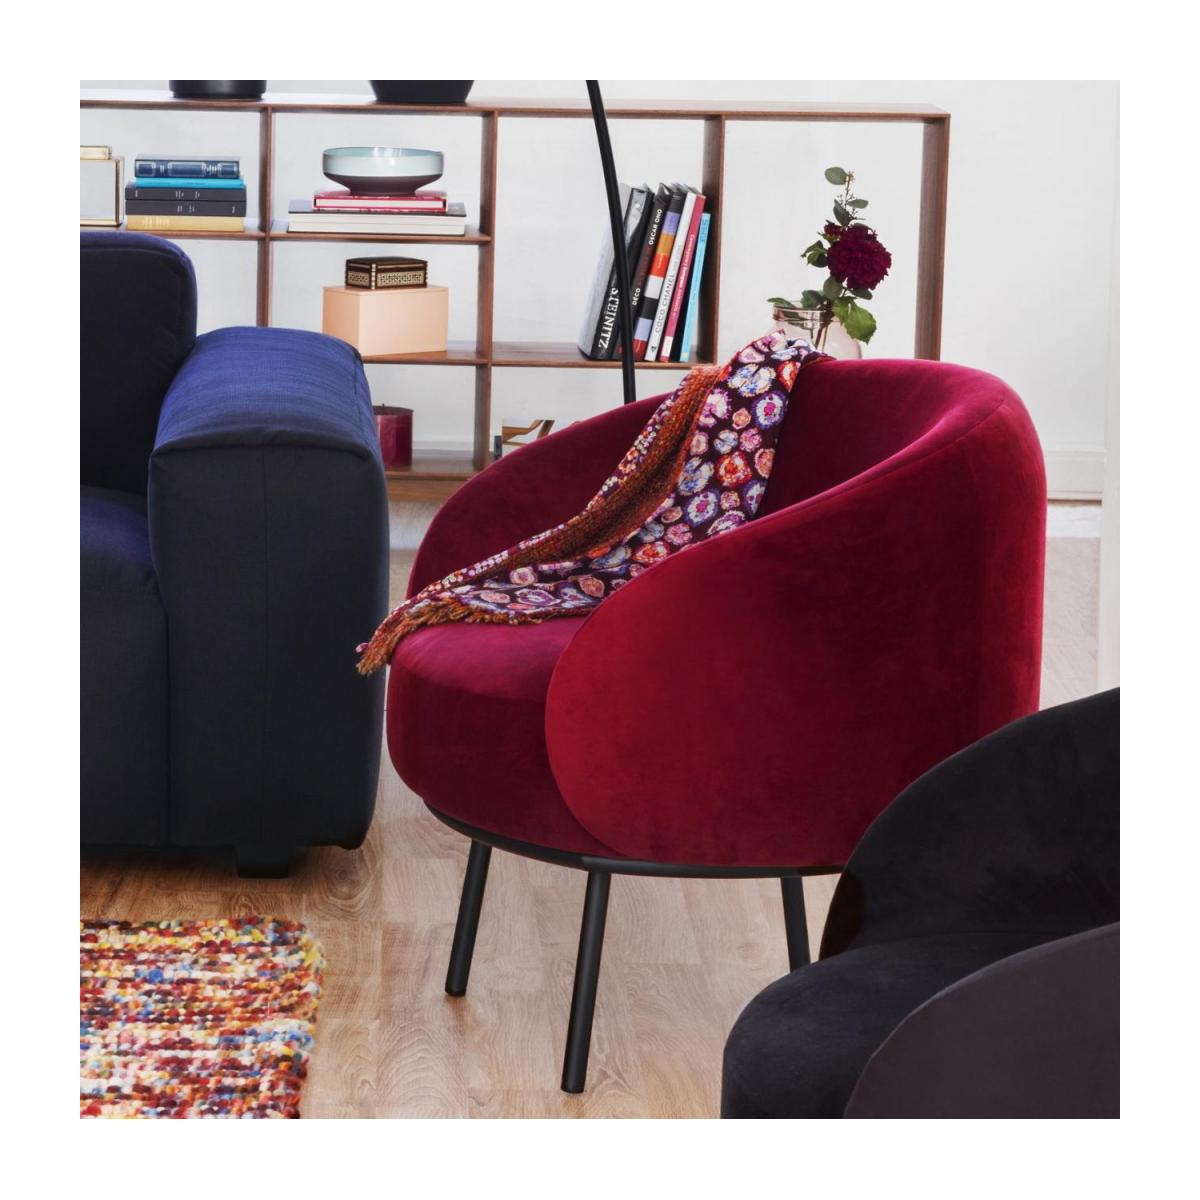 Fauteuil en velours - Lie-de-vin  - Design by Adrien Carvès n°2